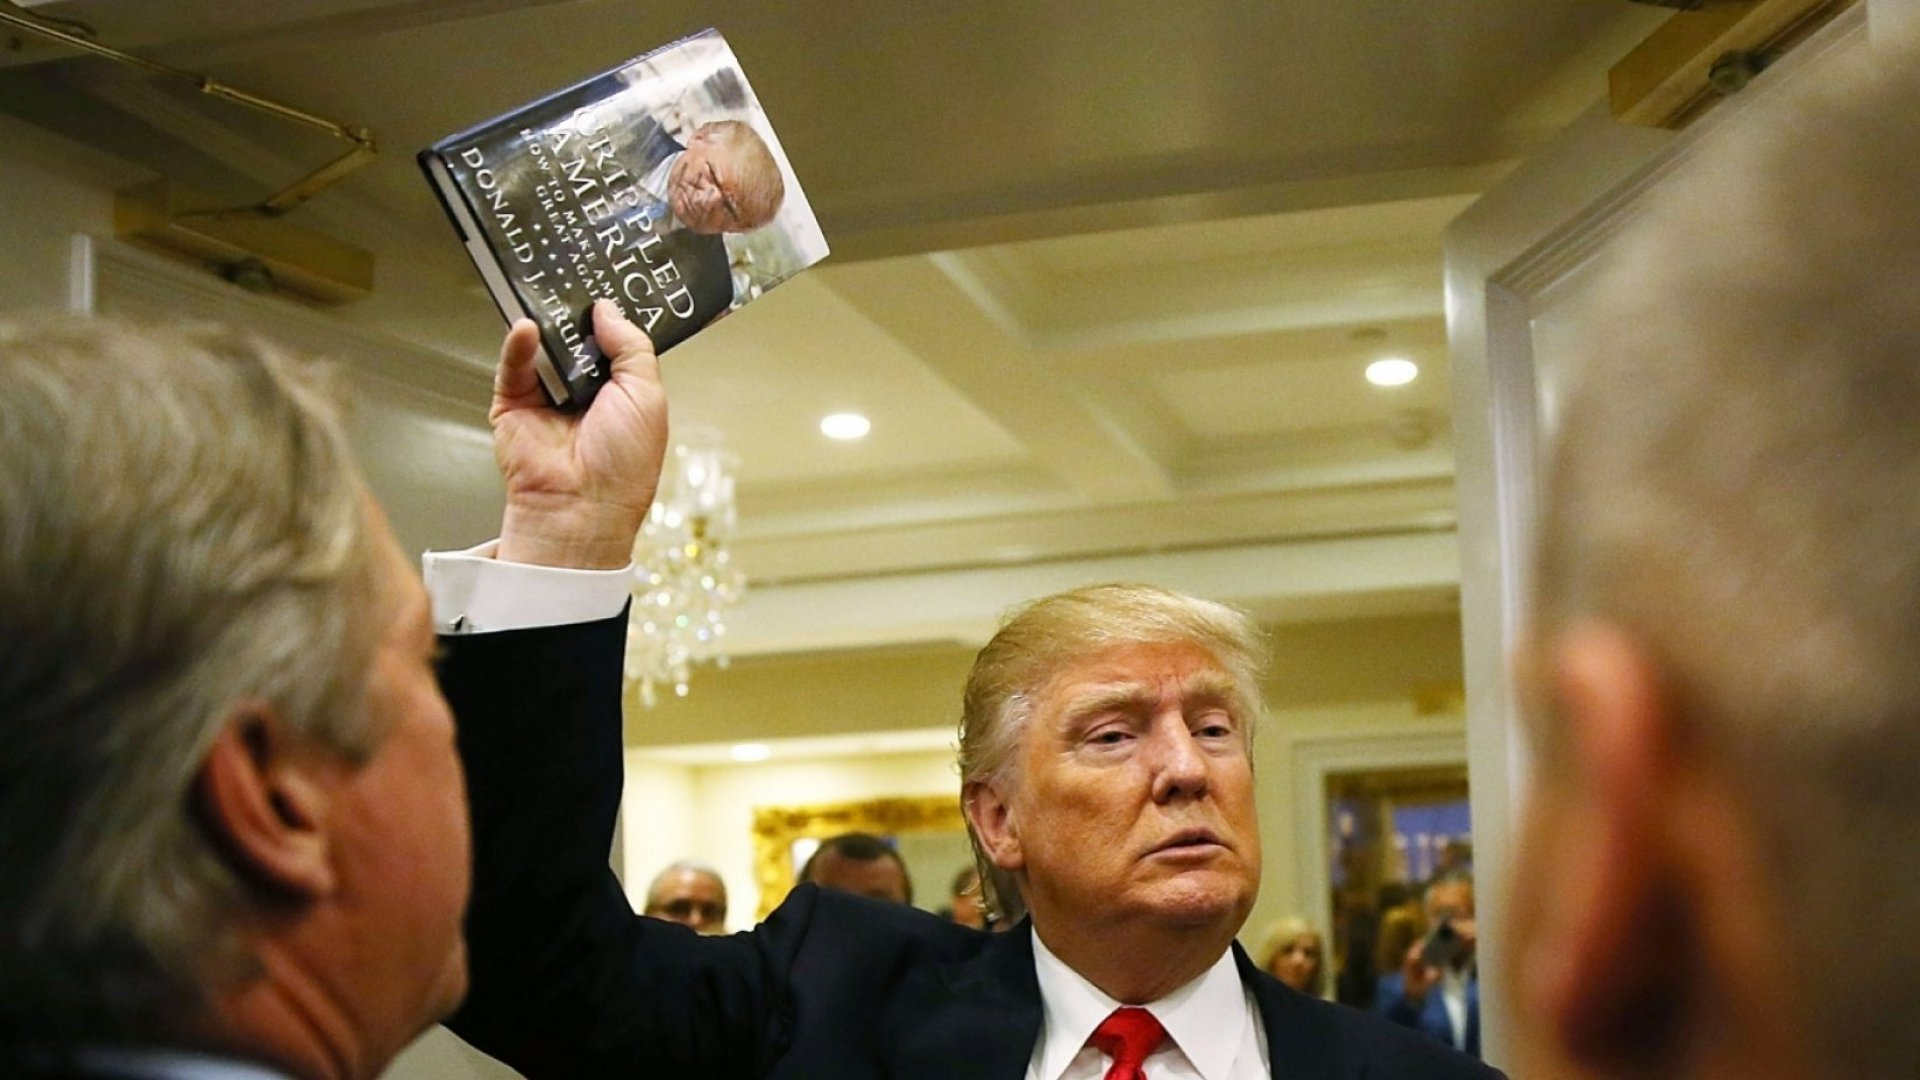 9 Books That Trump Should (But Probably Won't) Read While in Office